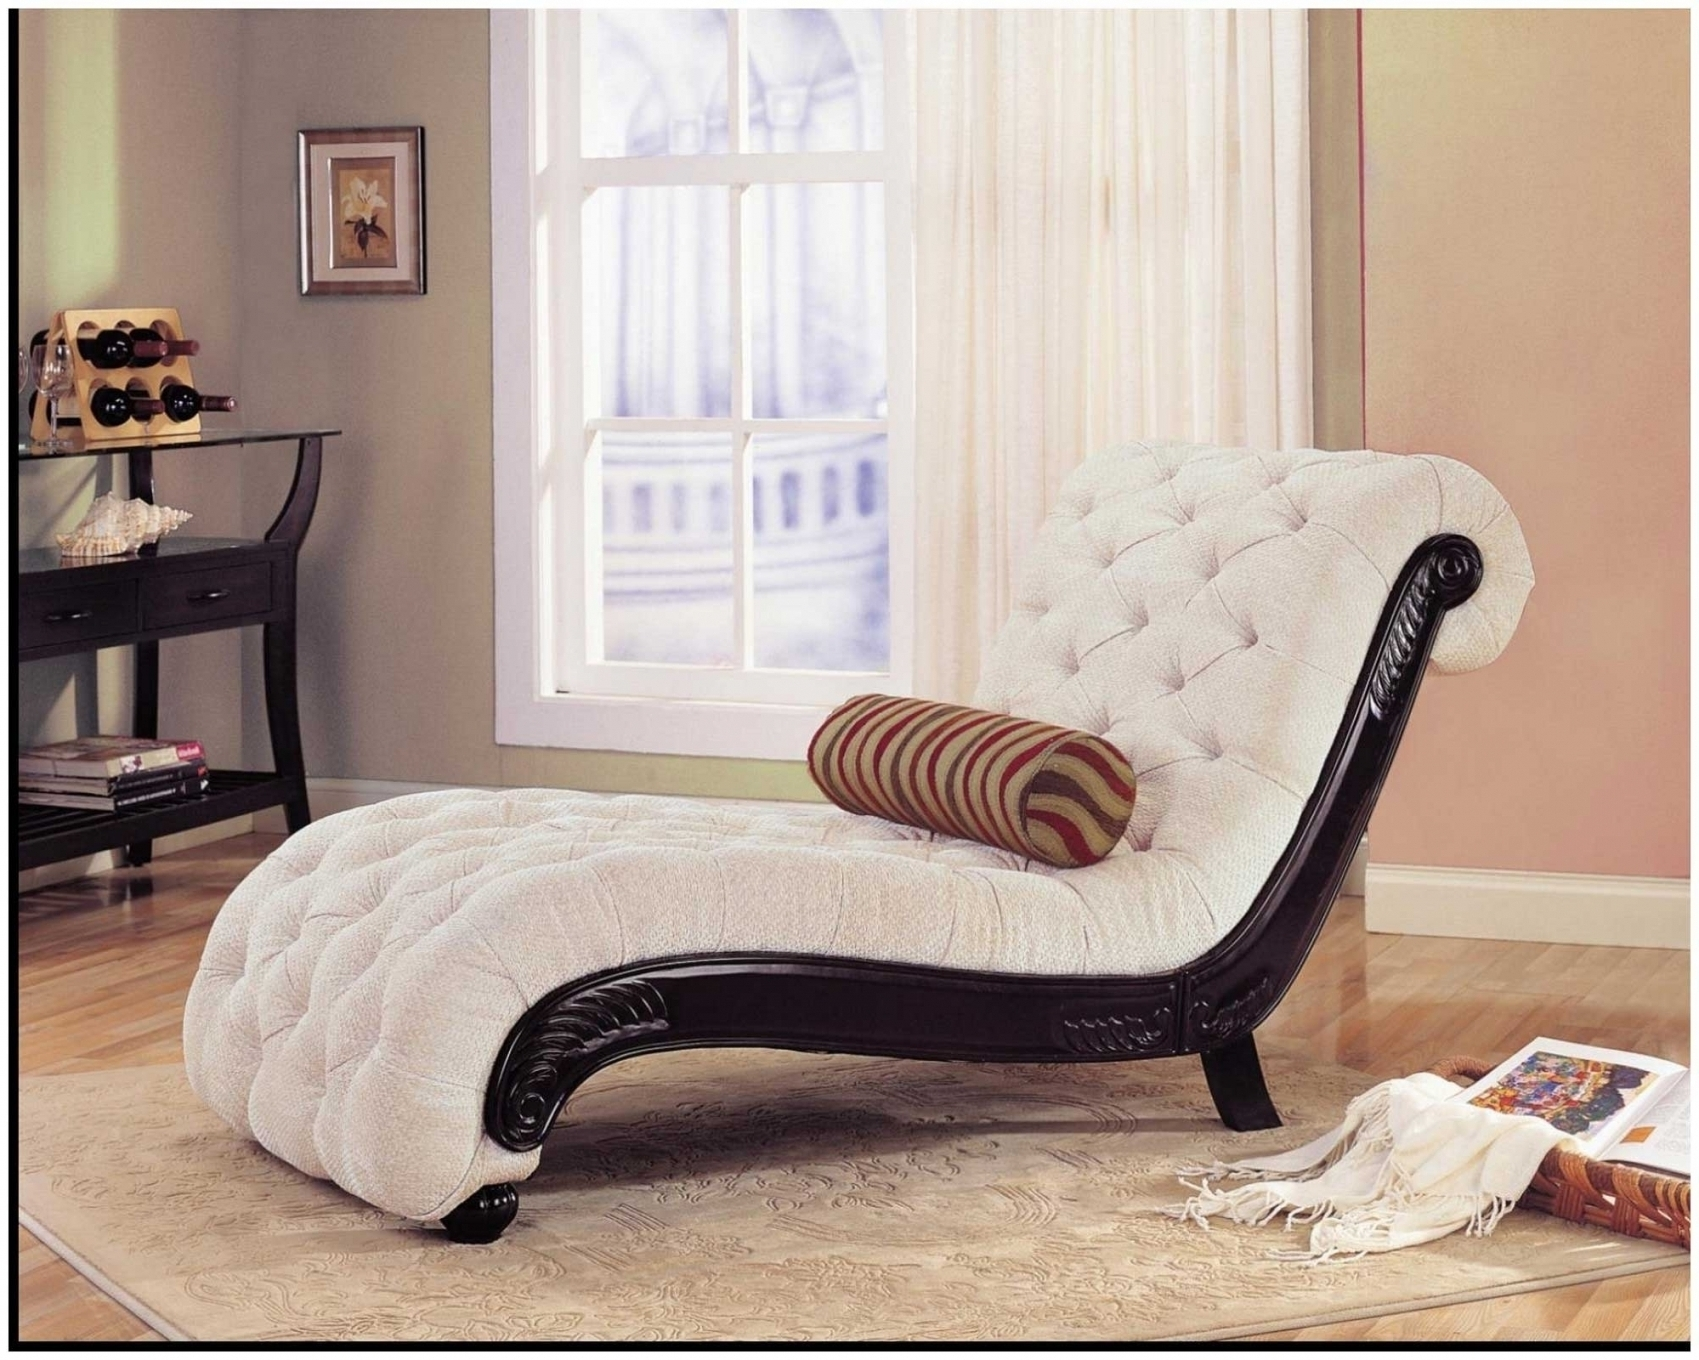 Most Recent Bedroom Chairs Indoor Chaise Lounge Chairs White Colour Indoor For Regarding Luxury Chaise Lounge Chairs (View 5 of 15)